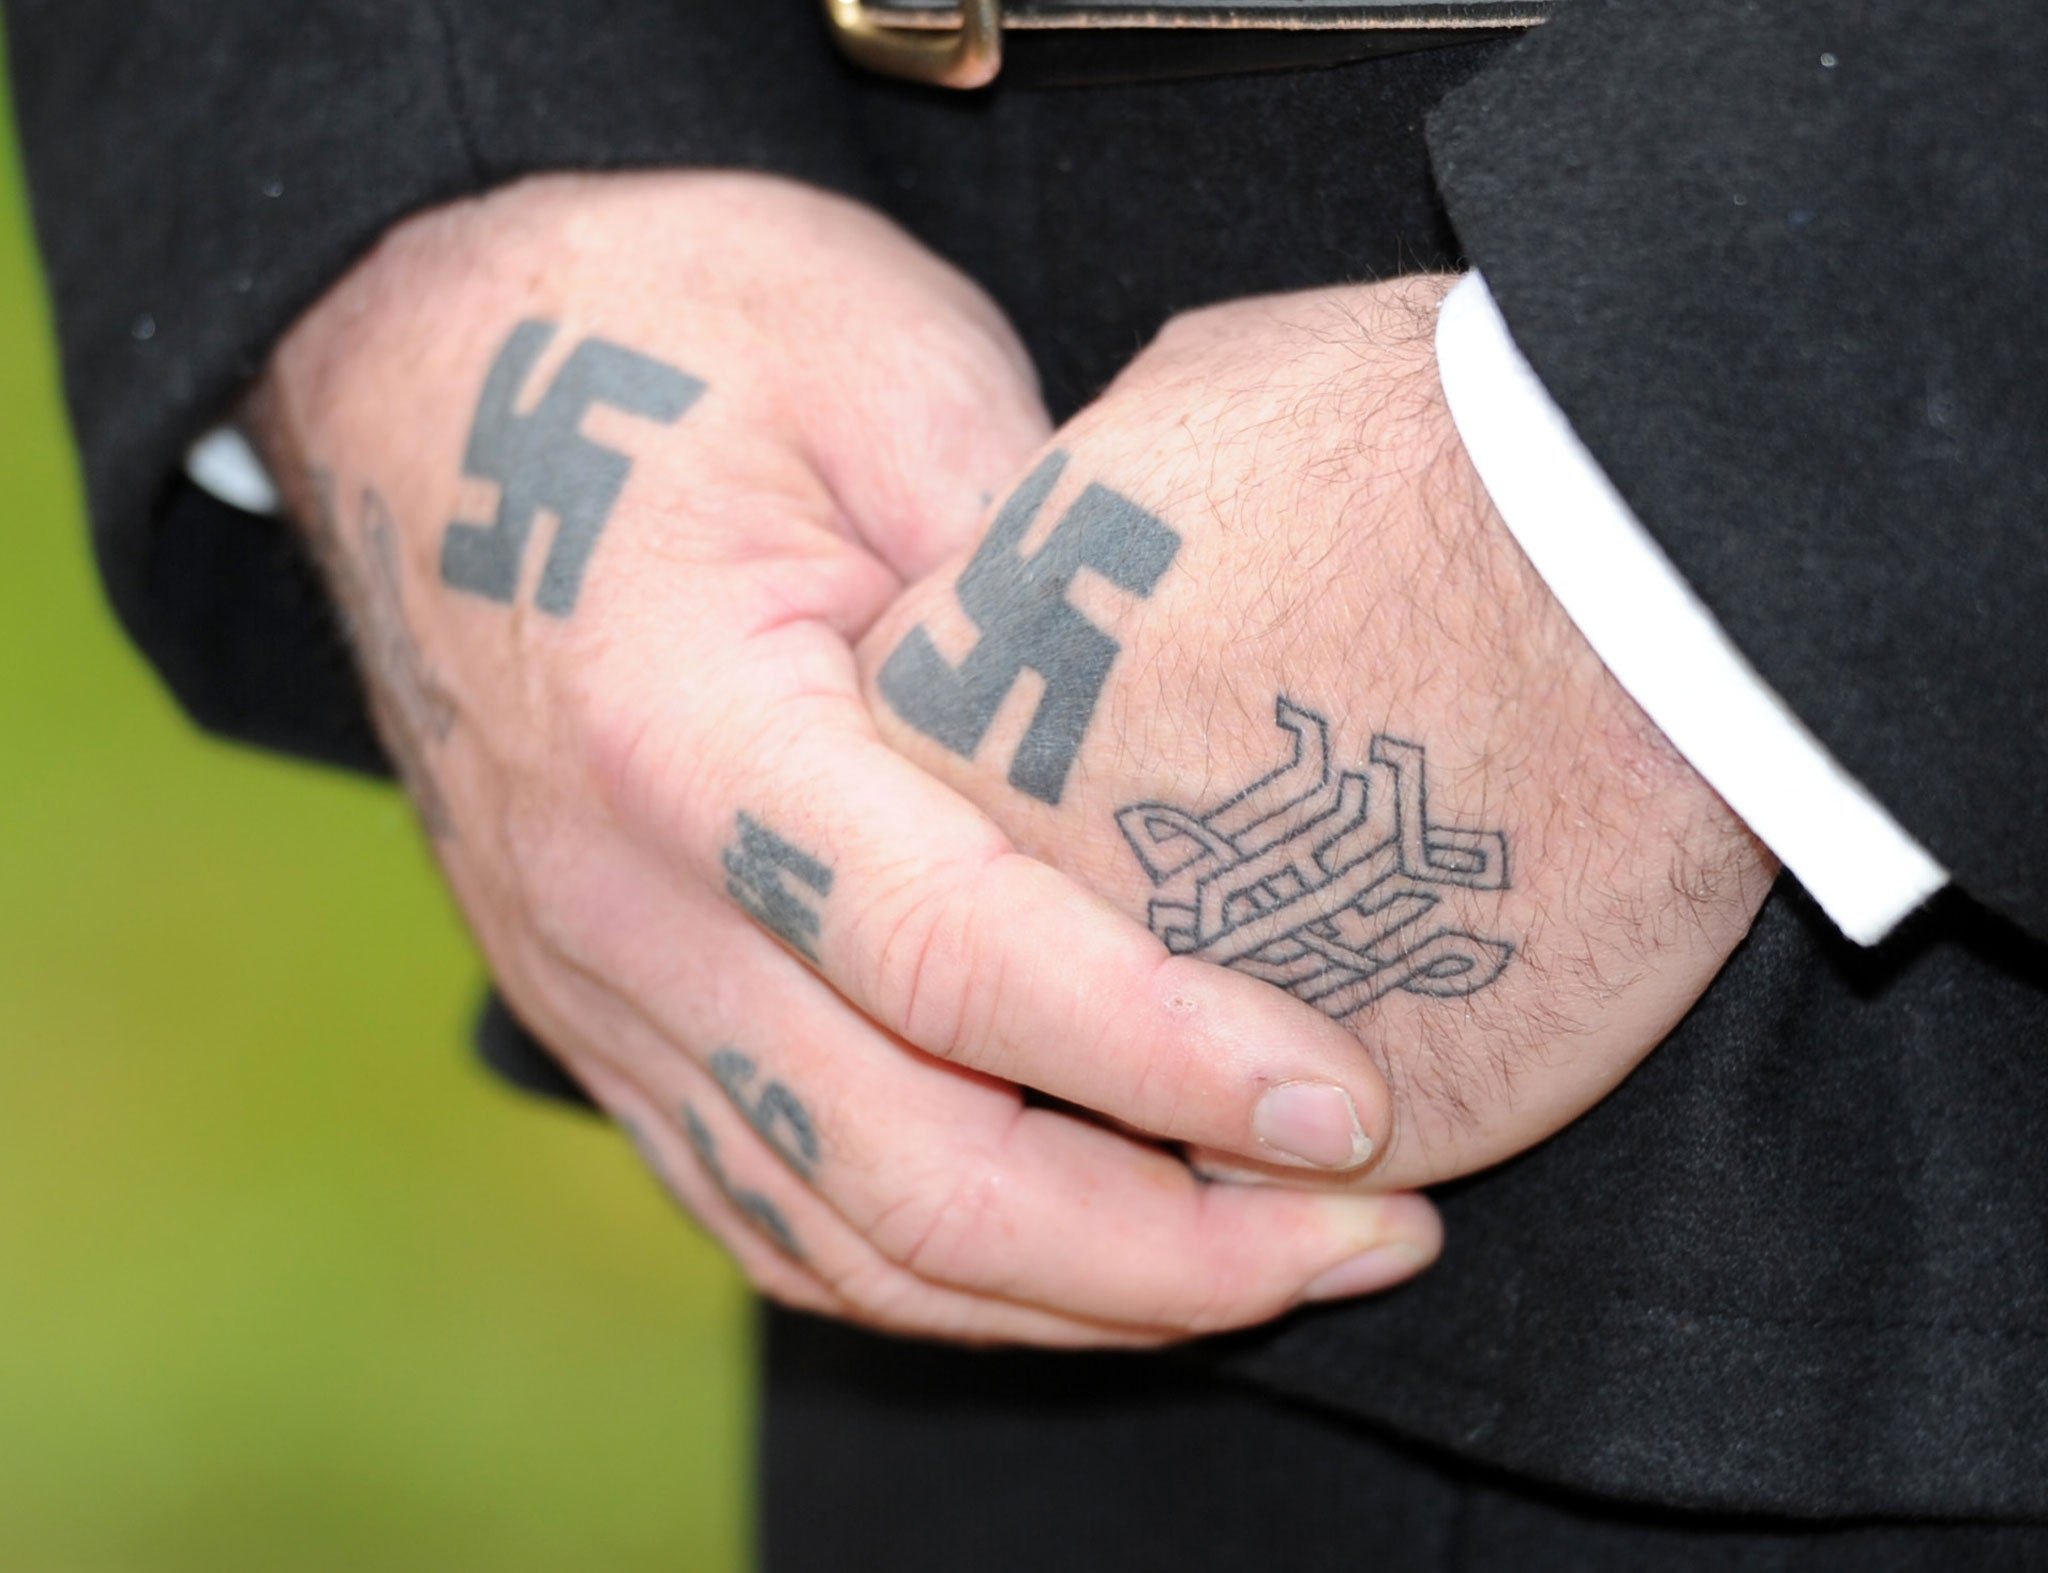 Scottish tattoo parlours to offer free swastika inkings in bid to scottish tattoo parlours to offer free swastika inkings in bid to reclaim symbol the independent biocorpaavc Image collections